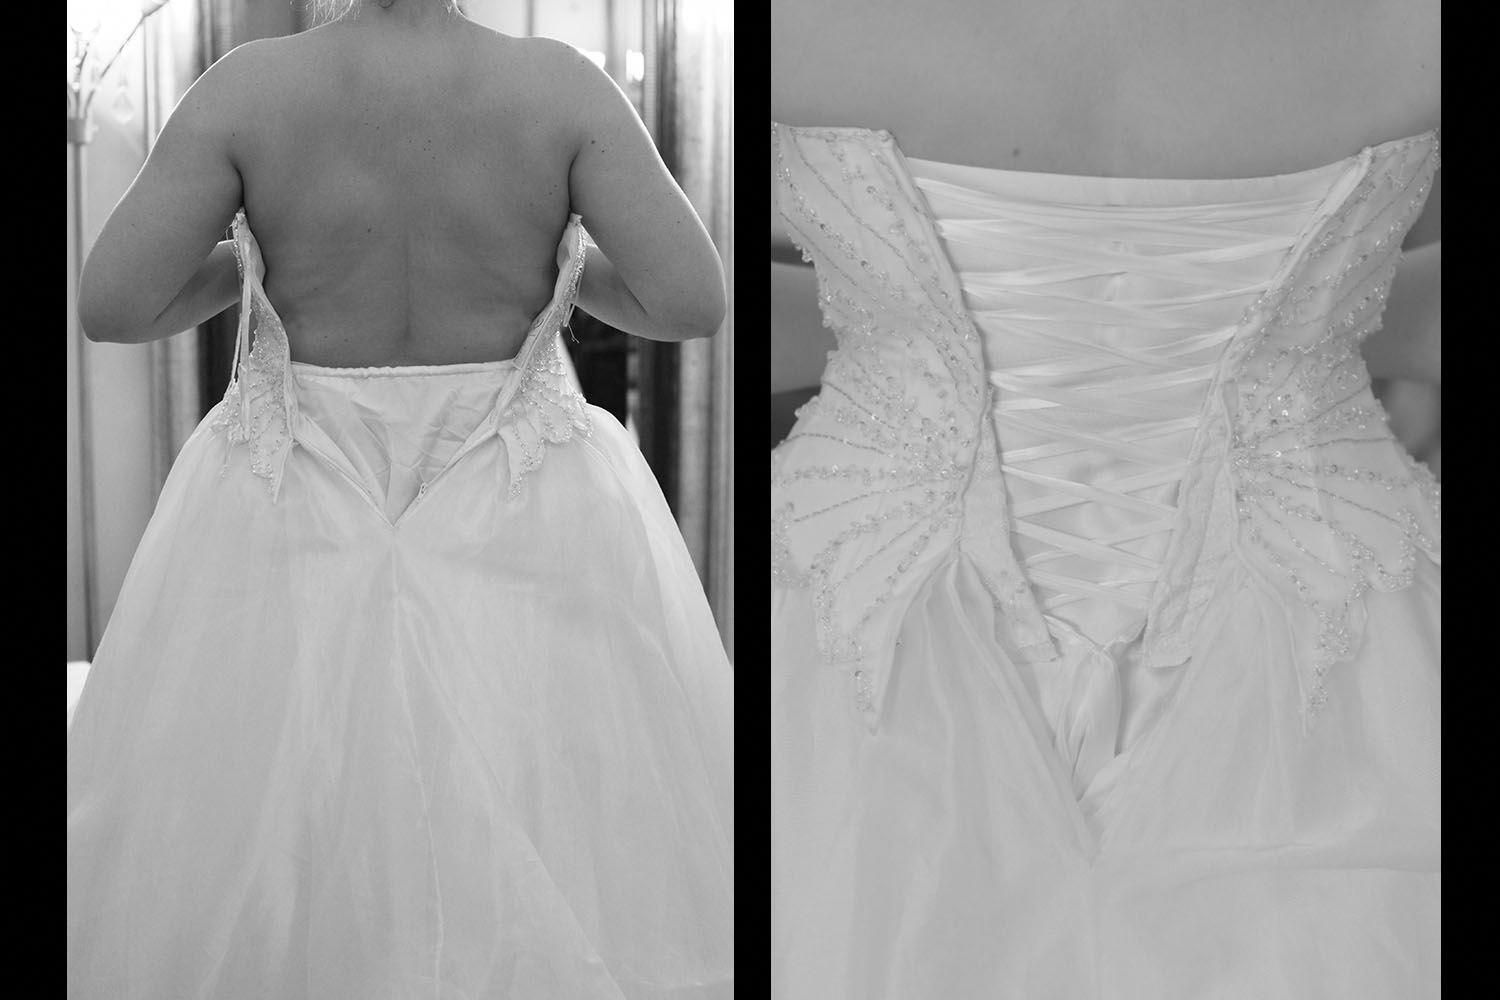 This Corset Is A Good Example Of How A Corset Can Get You In A Gown That S Quite A Bit Diy Bridesmaid Dress Corset Back Wedding Dress Wedding Dress Alterations